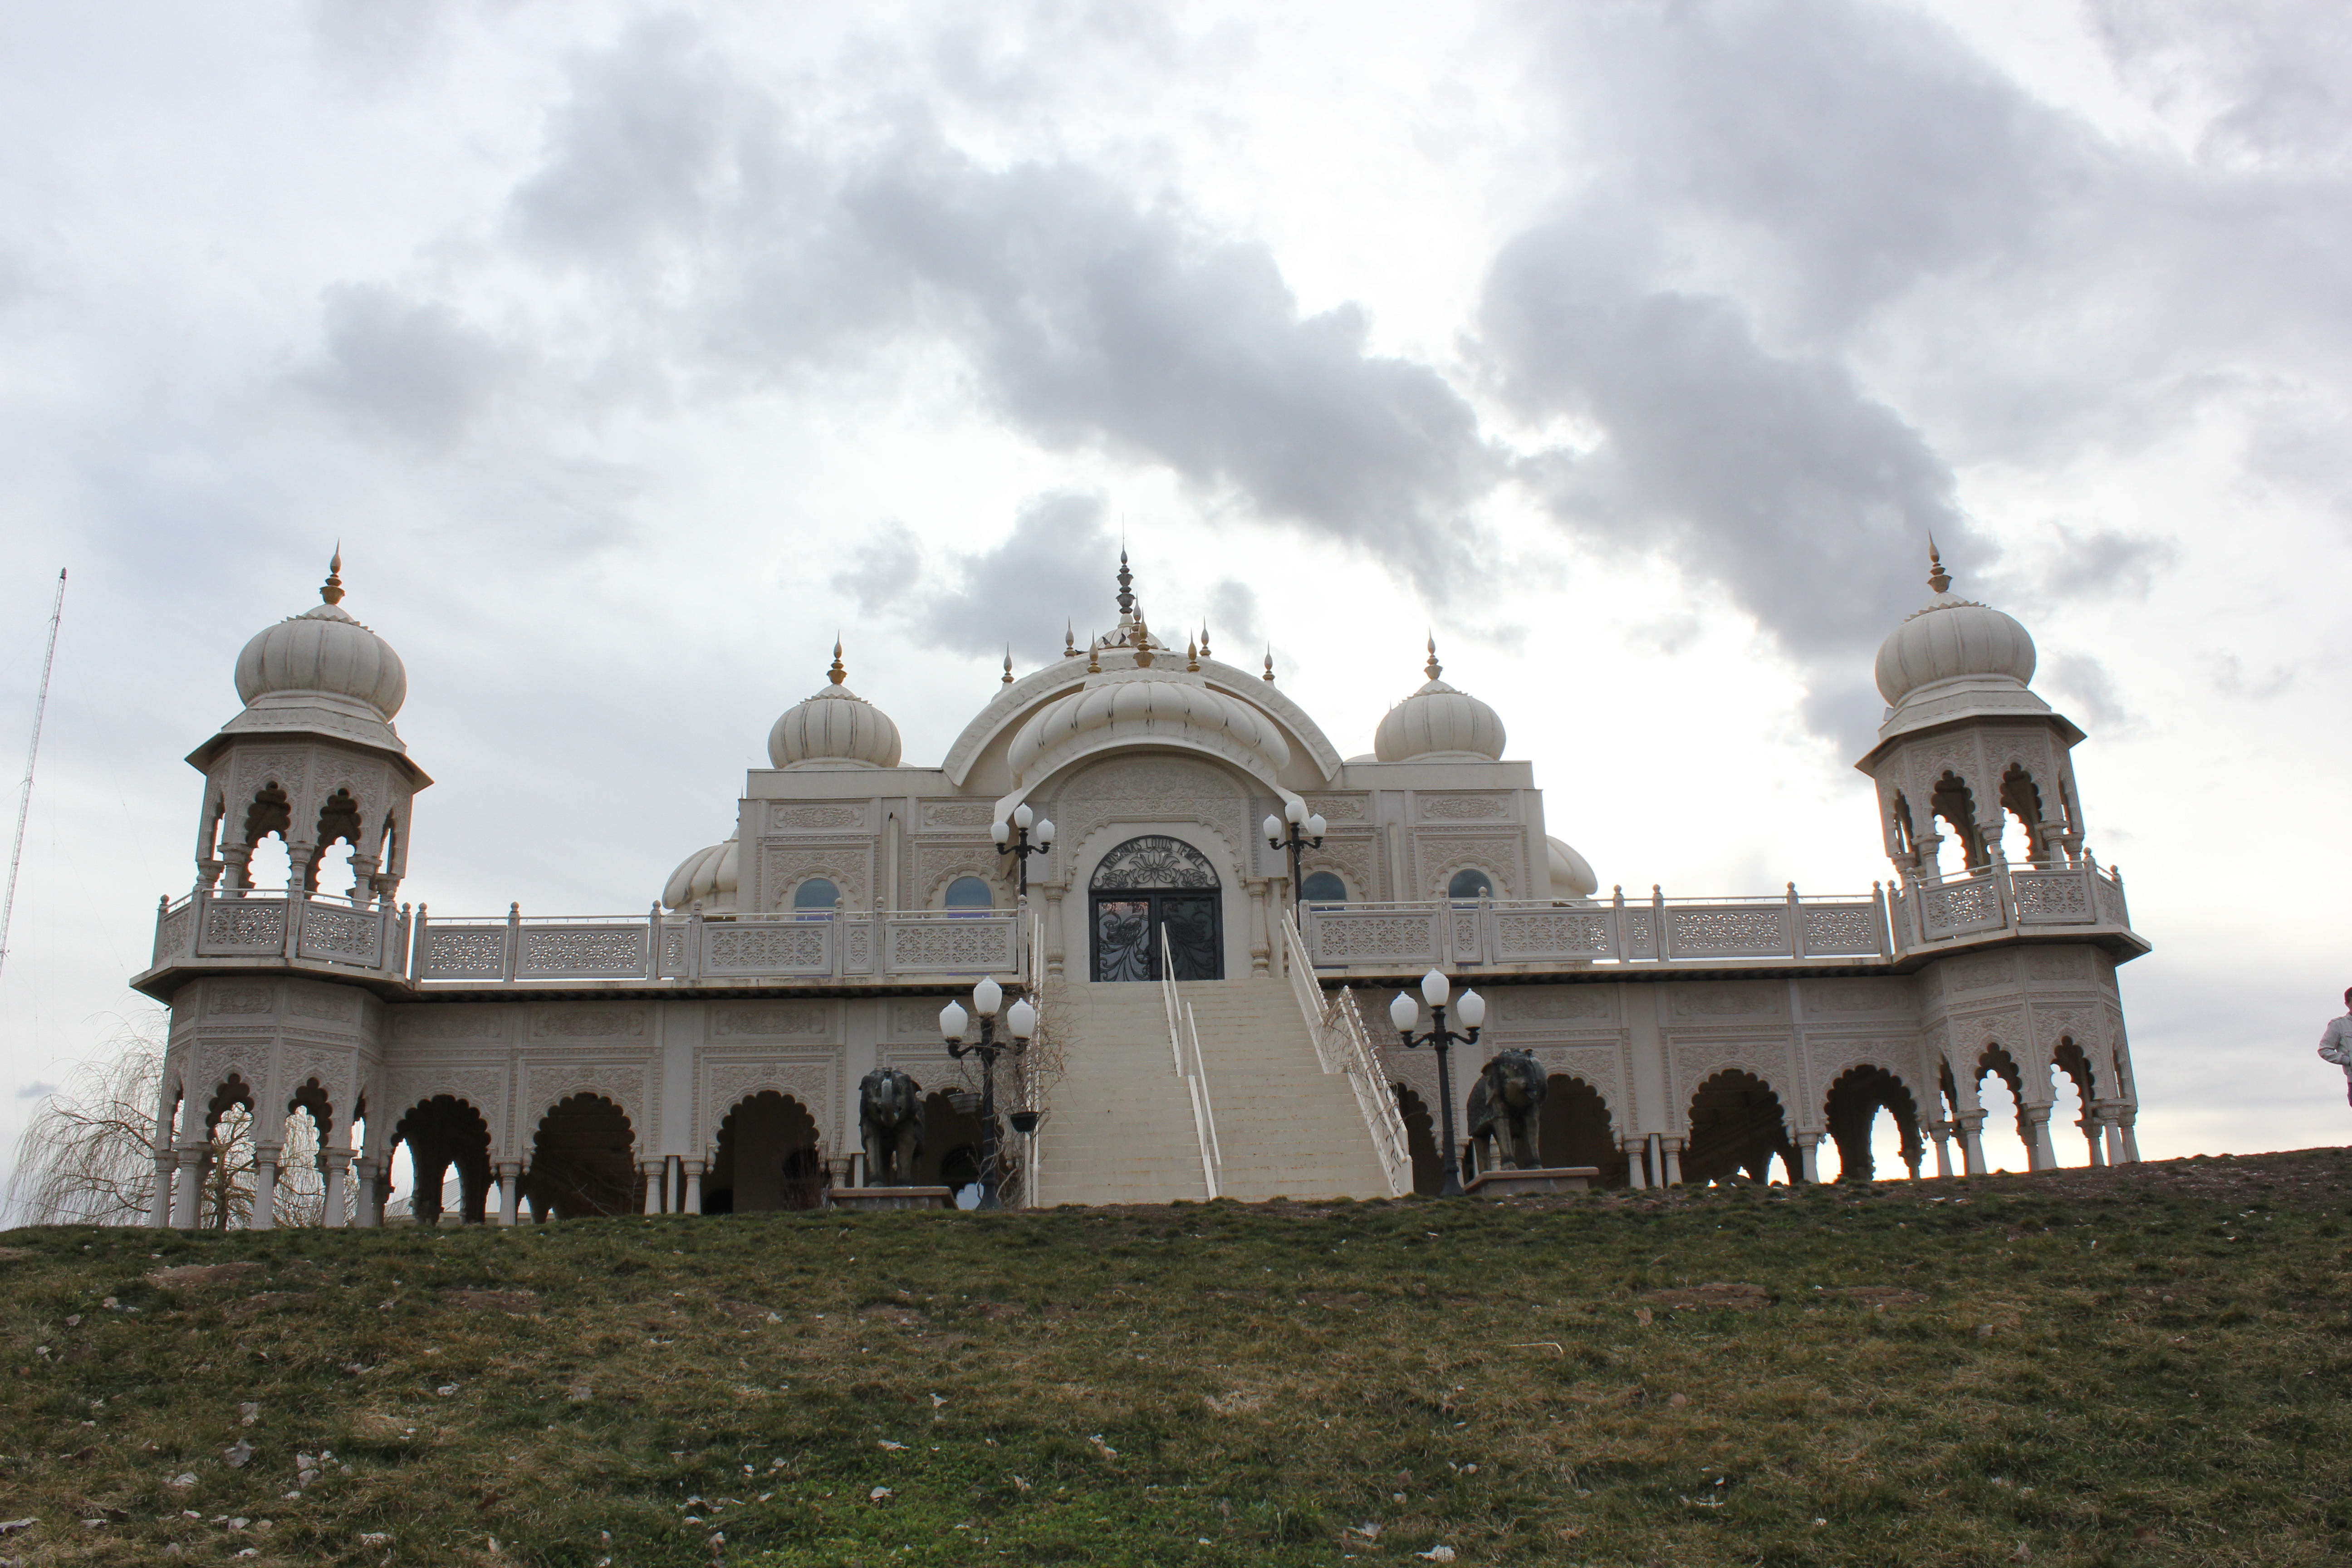 The Sri Sri Radha Krishna Temple in southern Spanish Fork, Utah is one of the only Rajasthani-style temples in the U.S. according to a temple worker.